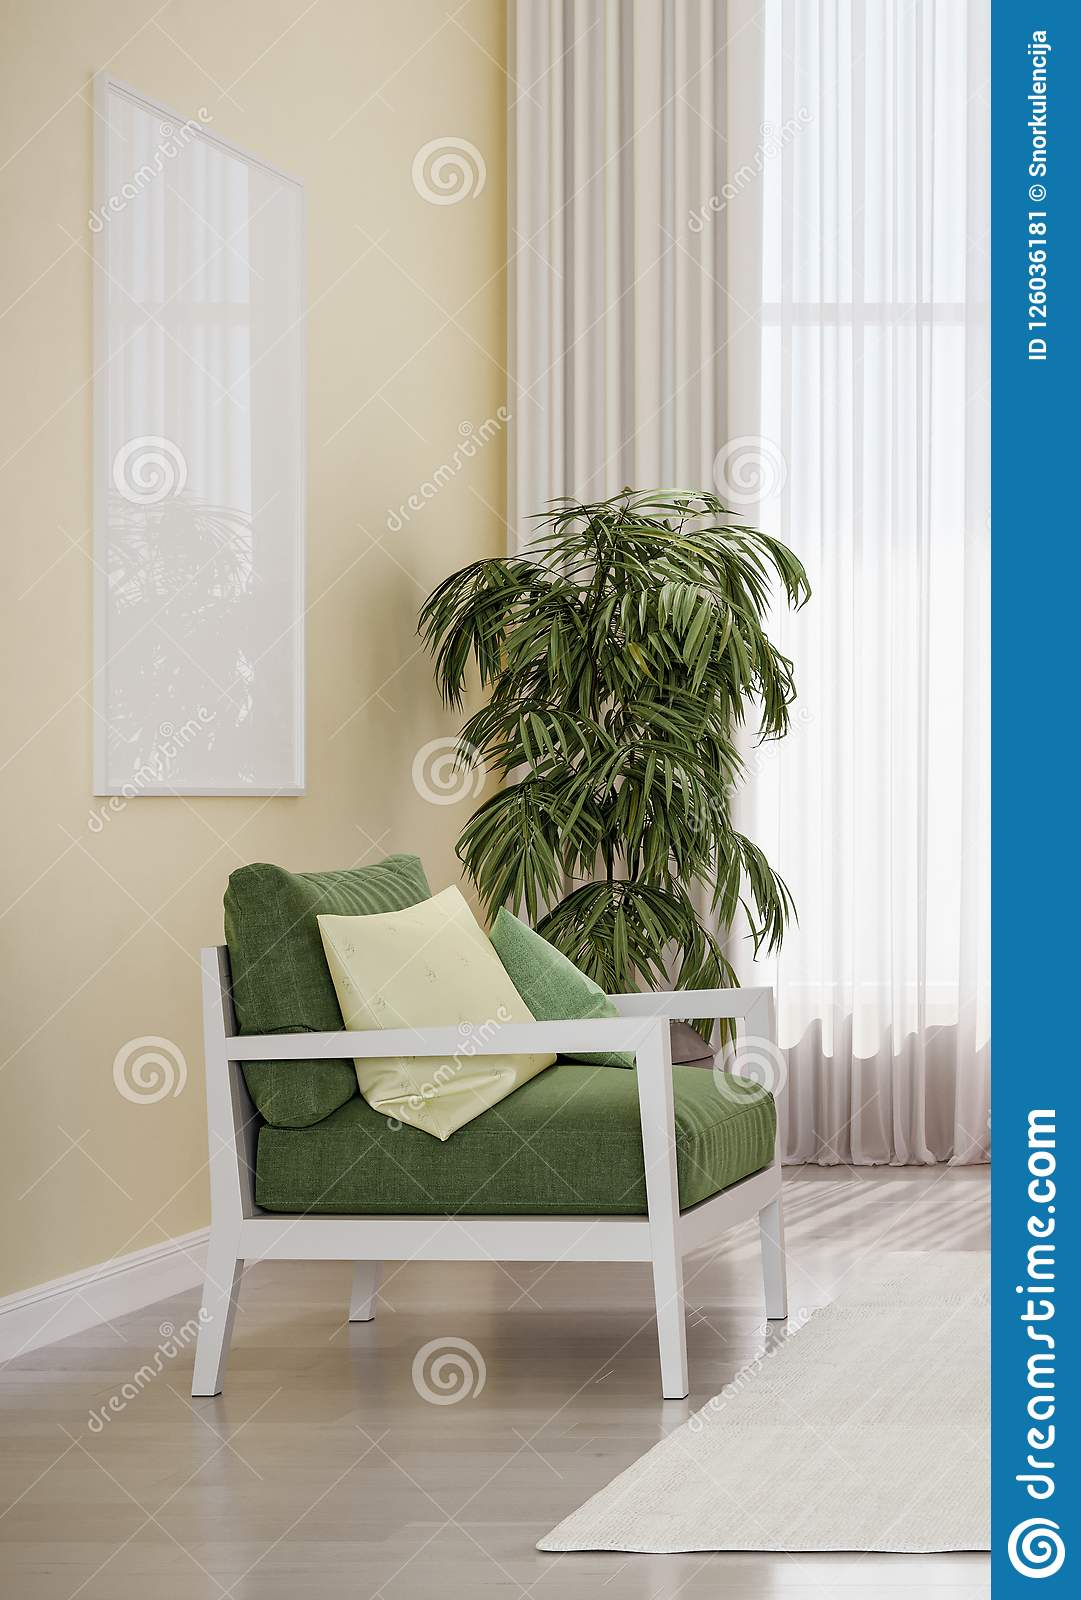 Fabulous Modern Design Interior Living Room Green Chair Stock Image Home Interior And Landscaping Ologienasavecom